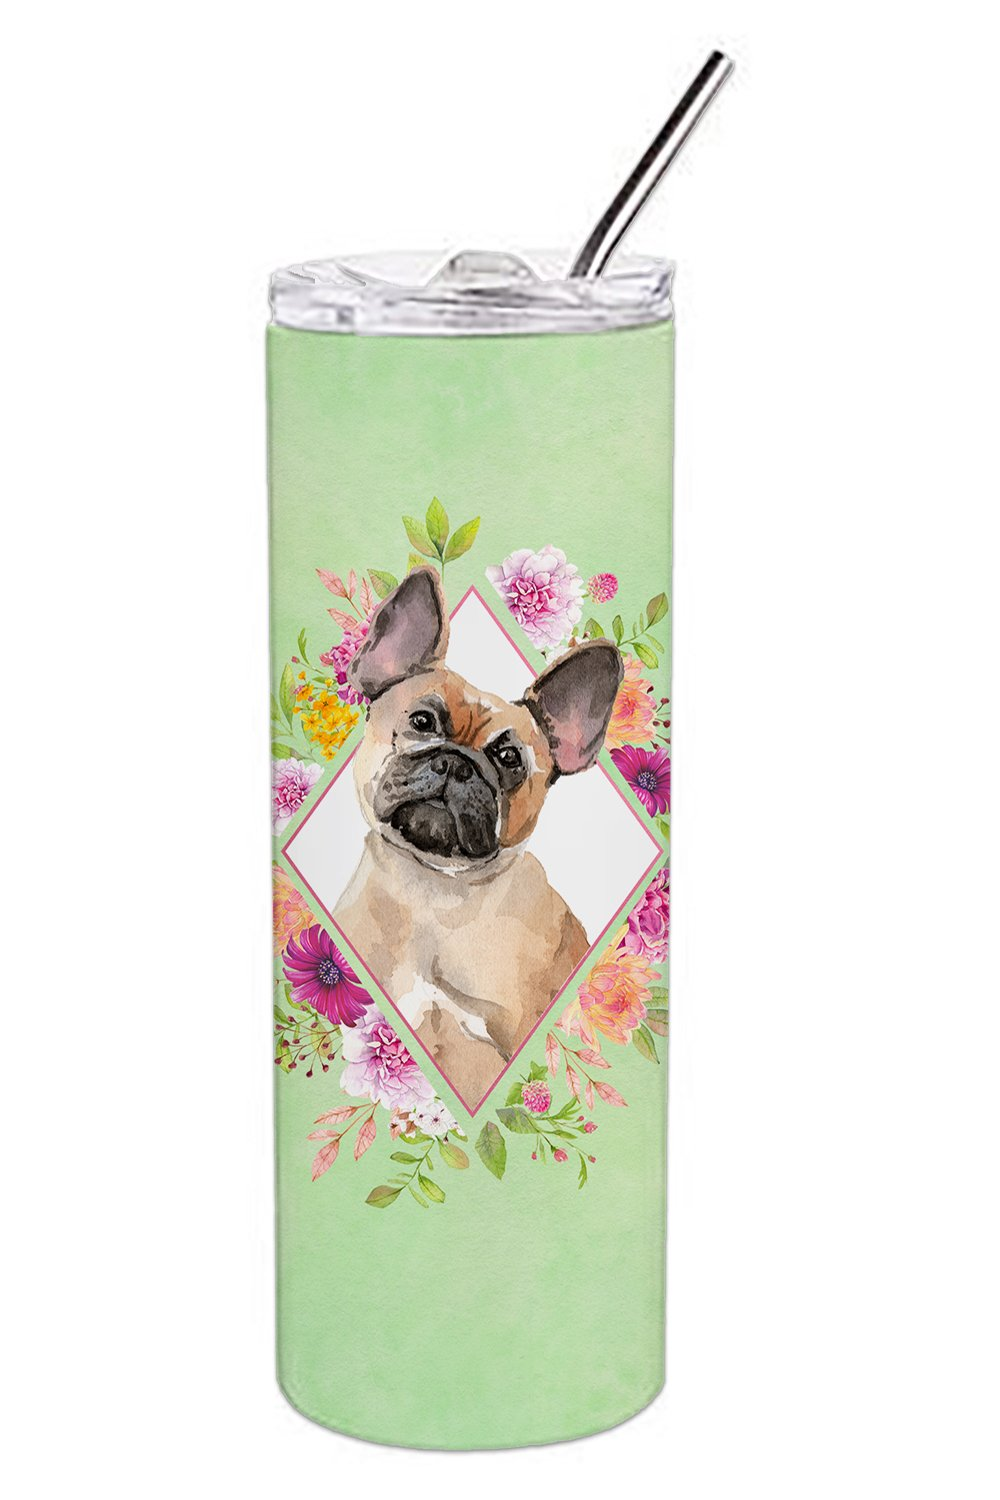 Fawn French Bulldog Green Flowers Double Walled Stainless Steel 20 oz Skinny Tumbler CK4398TBL20 by Caroline's Treasures